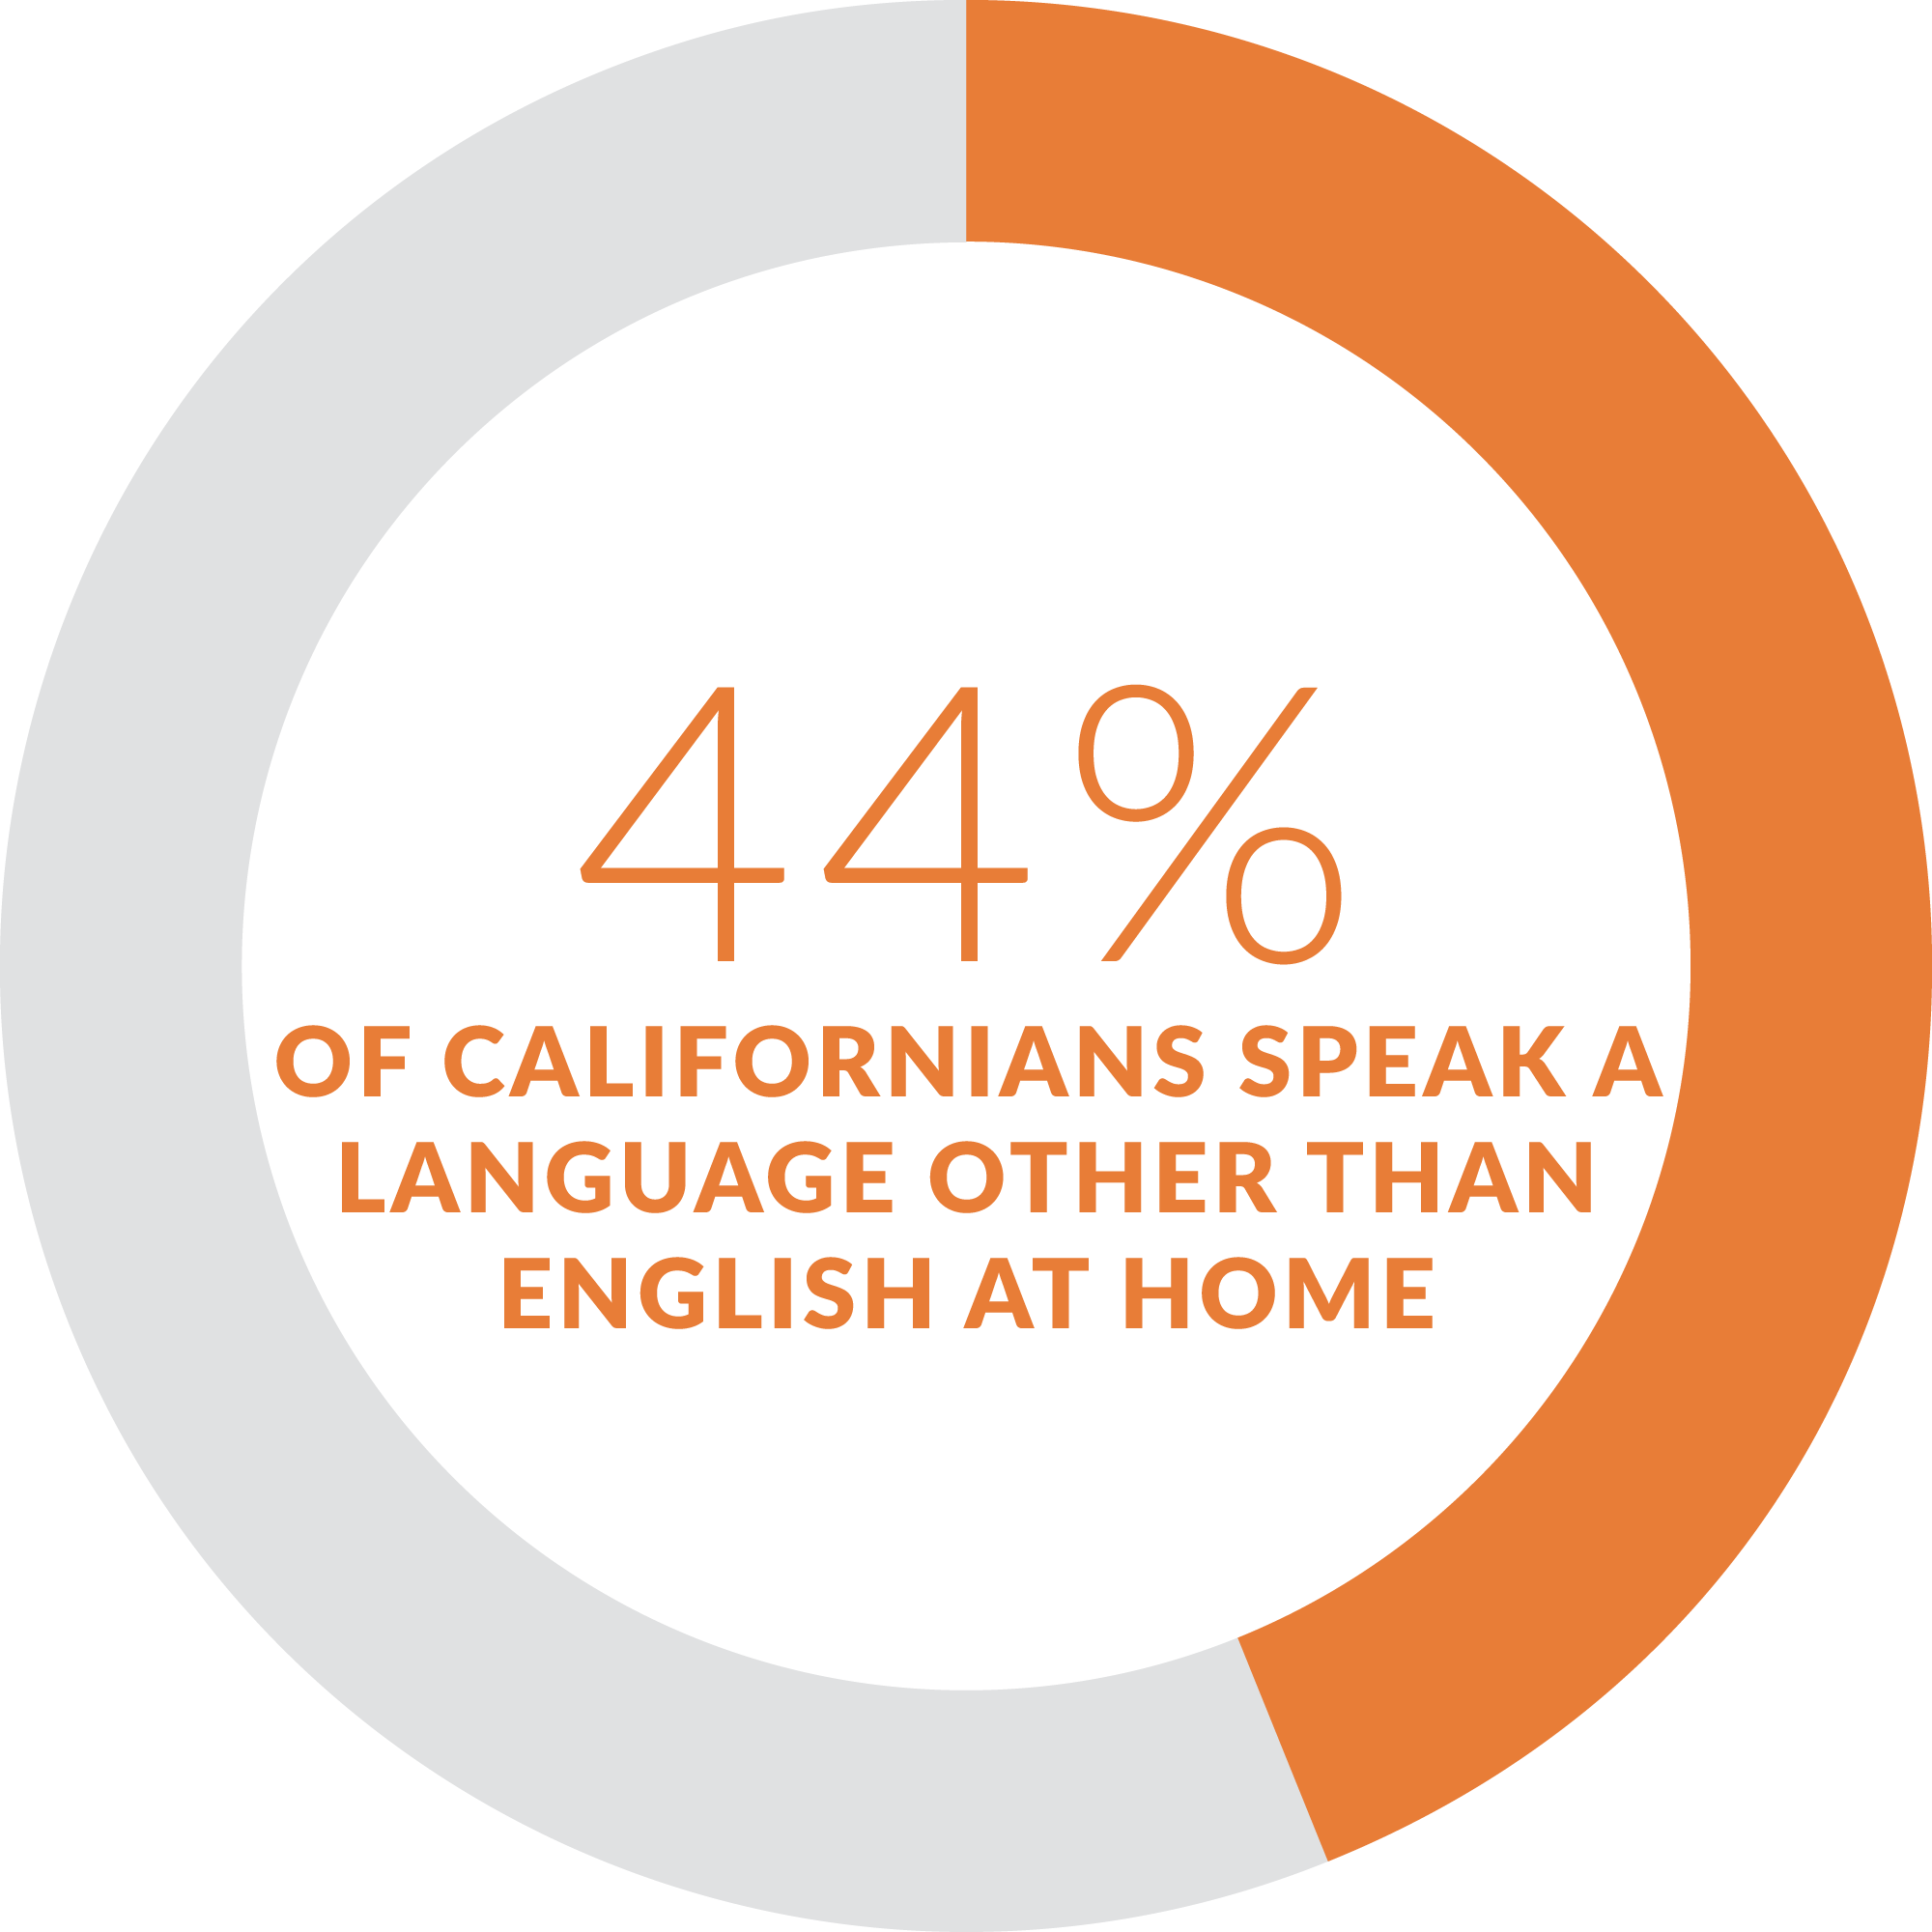 California has the highest percentage of residents that speak a language other than English at home. Source:  U.S. Census